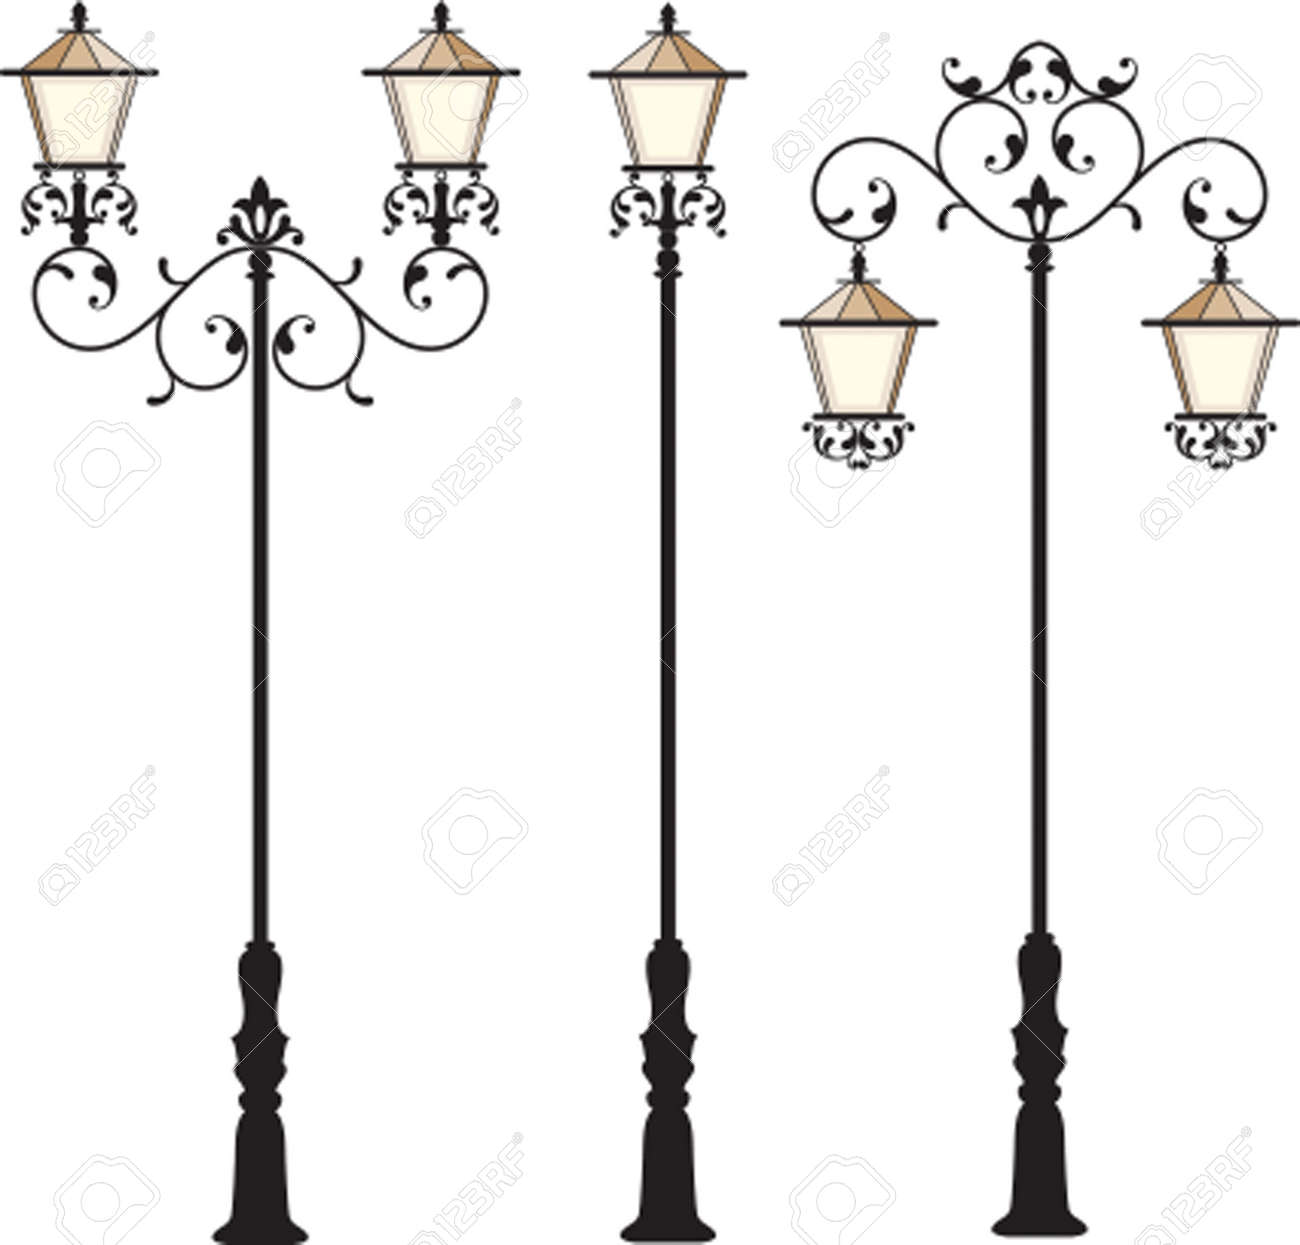 Wrought Iron Street Lamp Post Vector Art Royalty Free Cliparts ... for Street Lamp Post Vector  35fsj